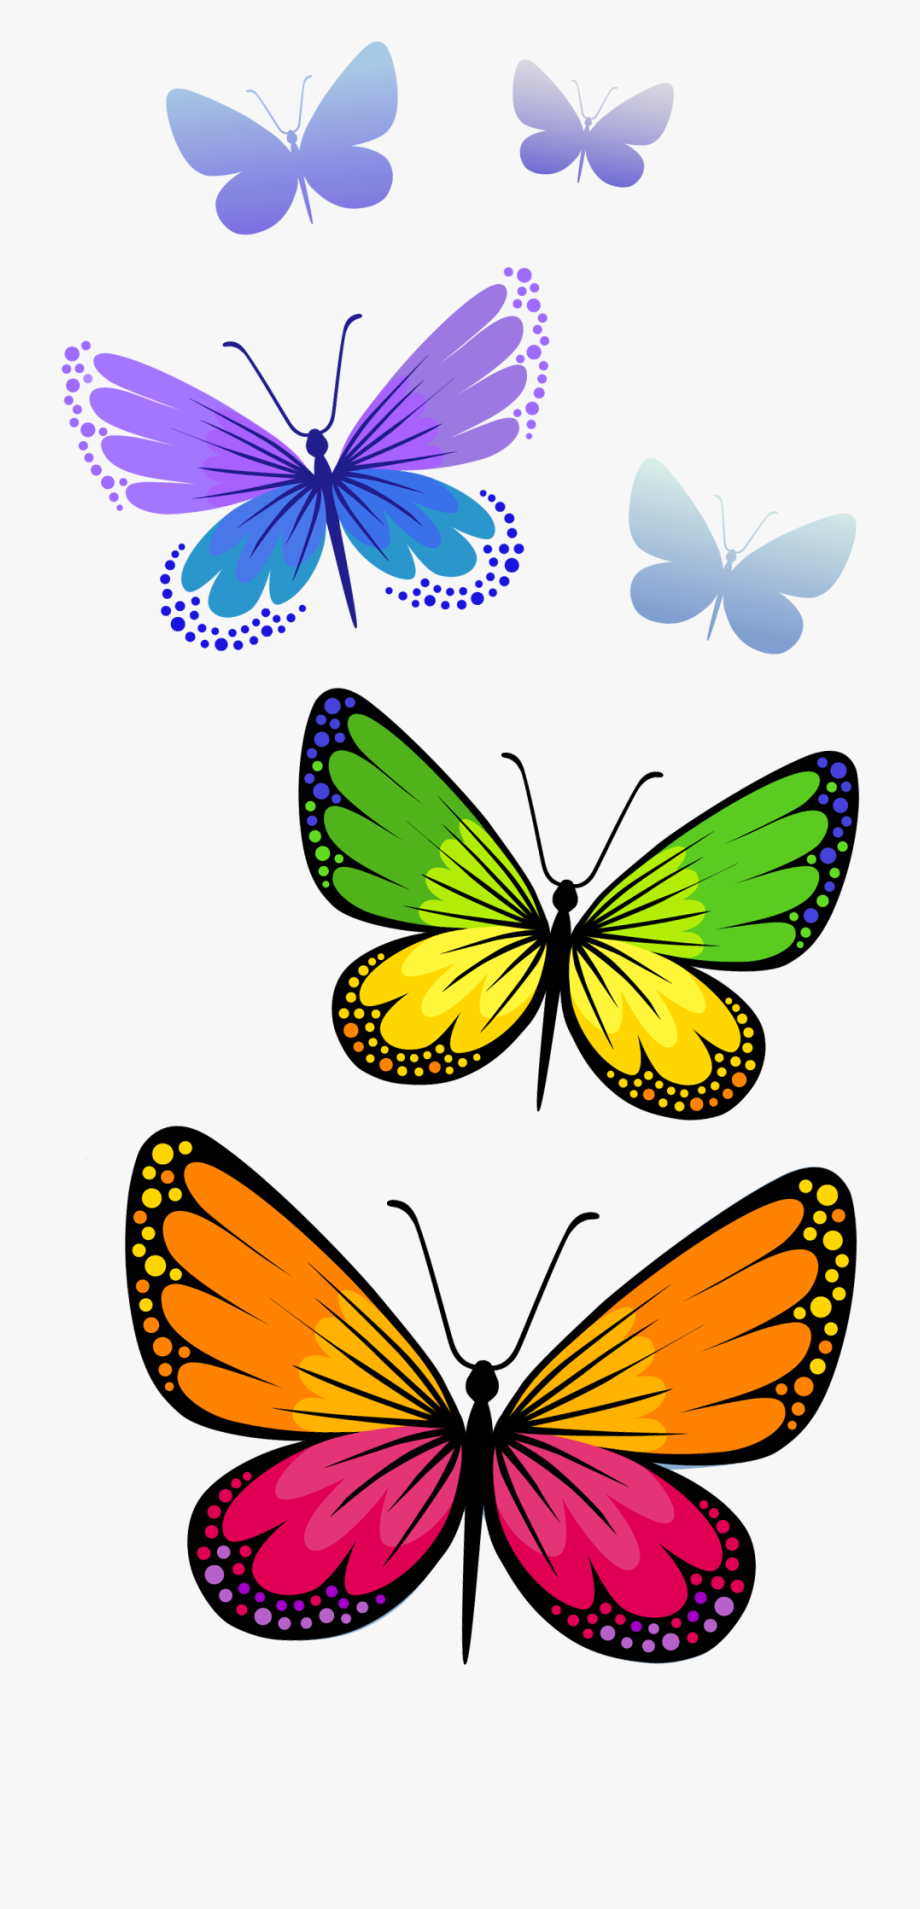 Free butterfly pictures clipart svg royalty free download Half Butterfly Cliparts Free Download Clip Art - Butterfly Clipart ... svg royalty free download